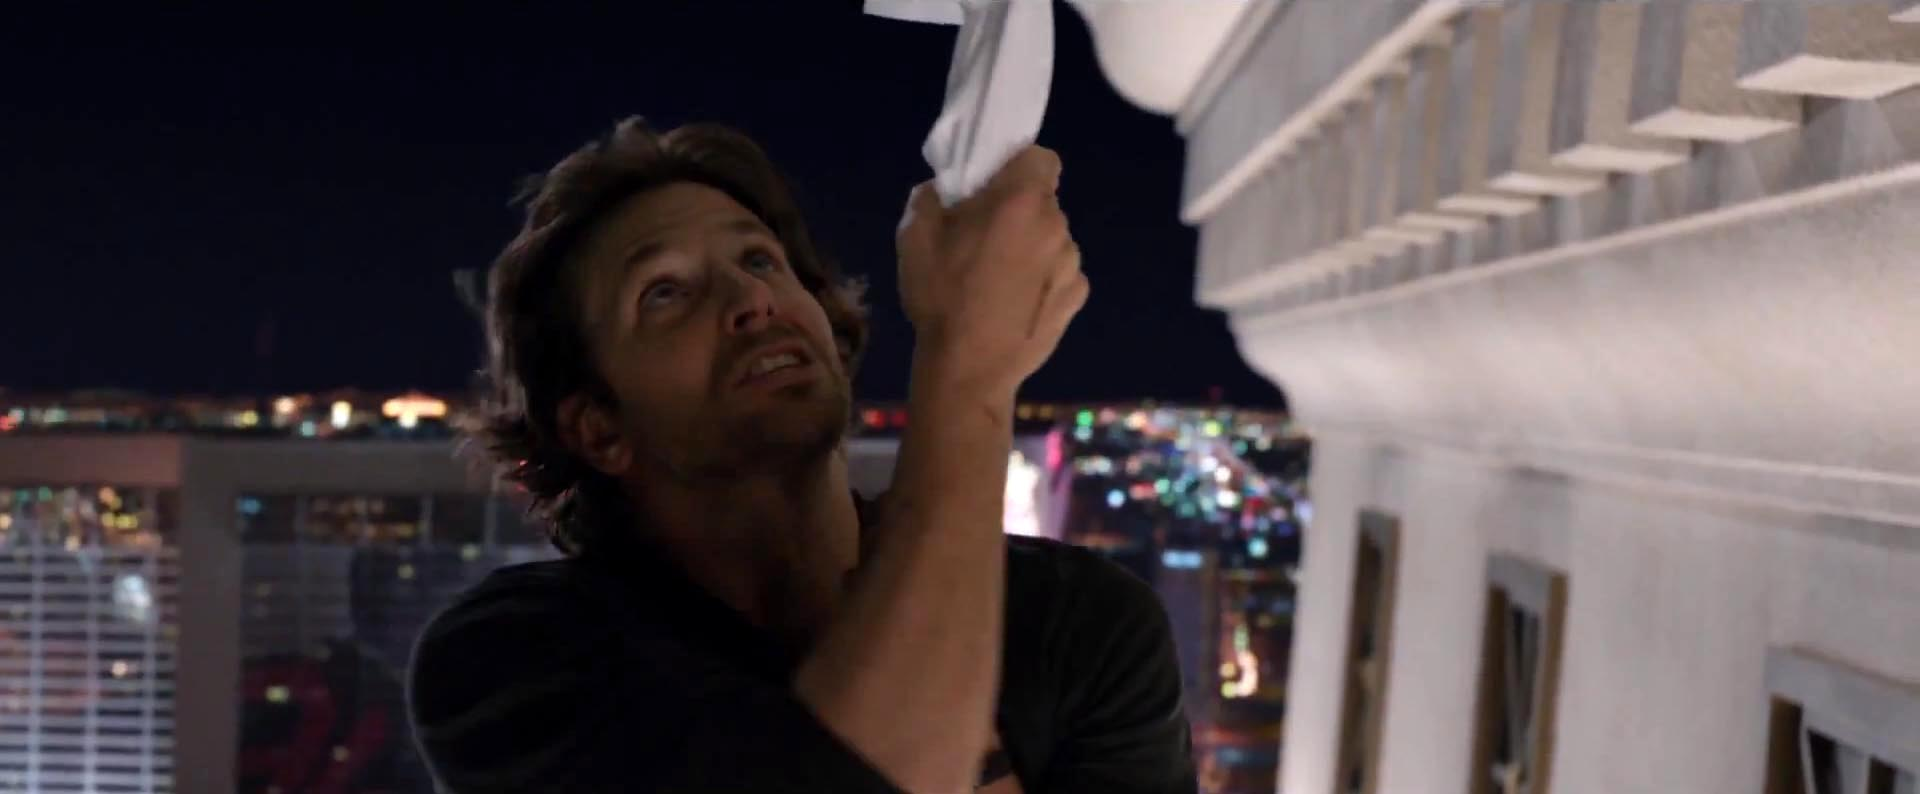 Bradley Cooper unleashes more wacky antics in new trailer for The Hangover Part III